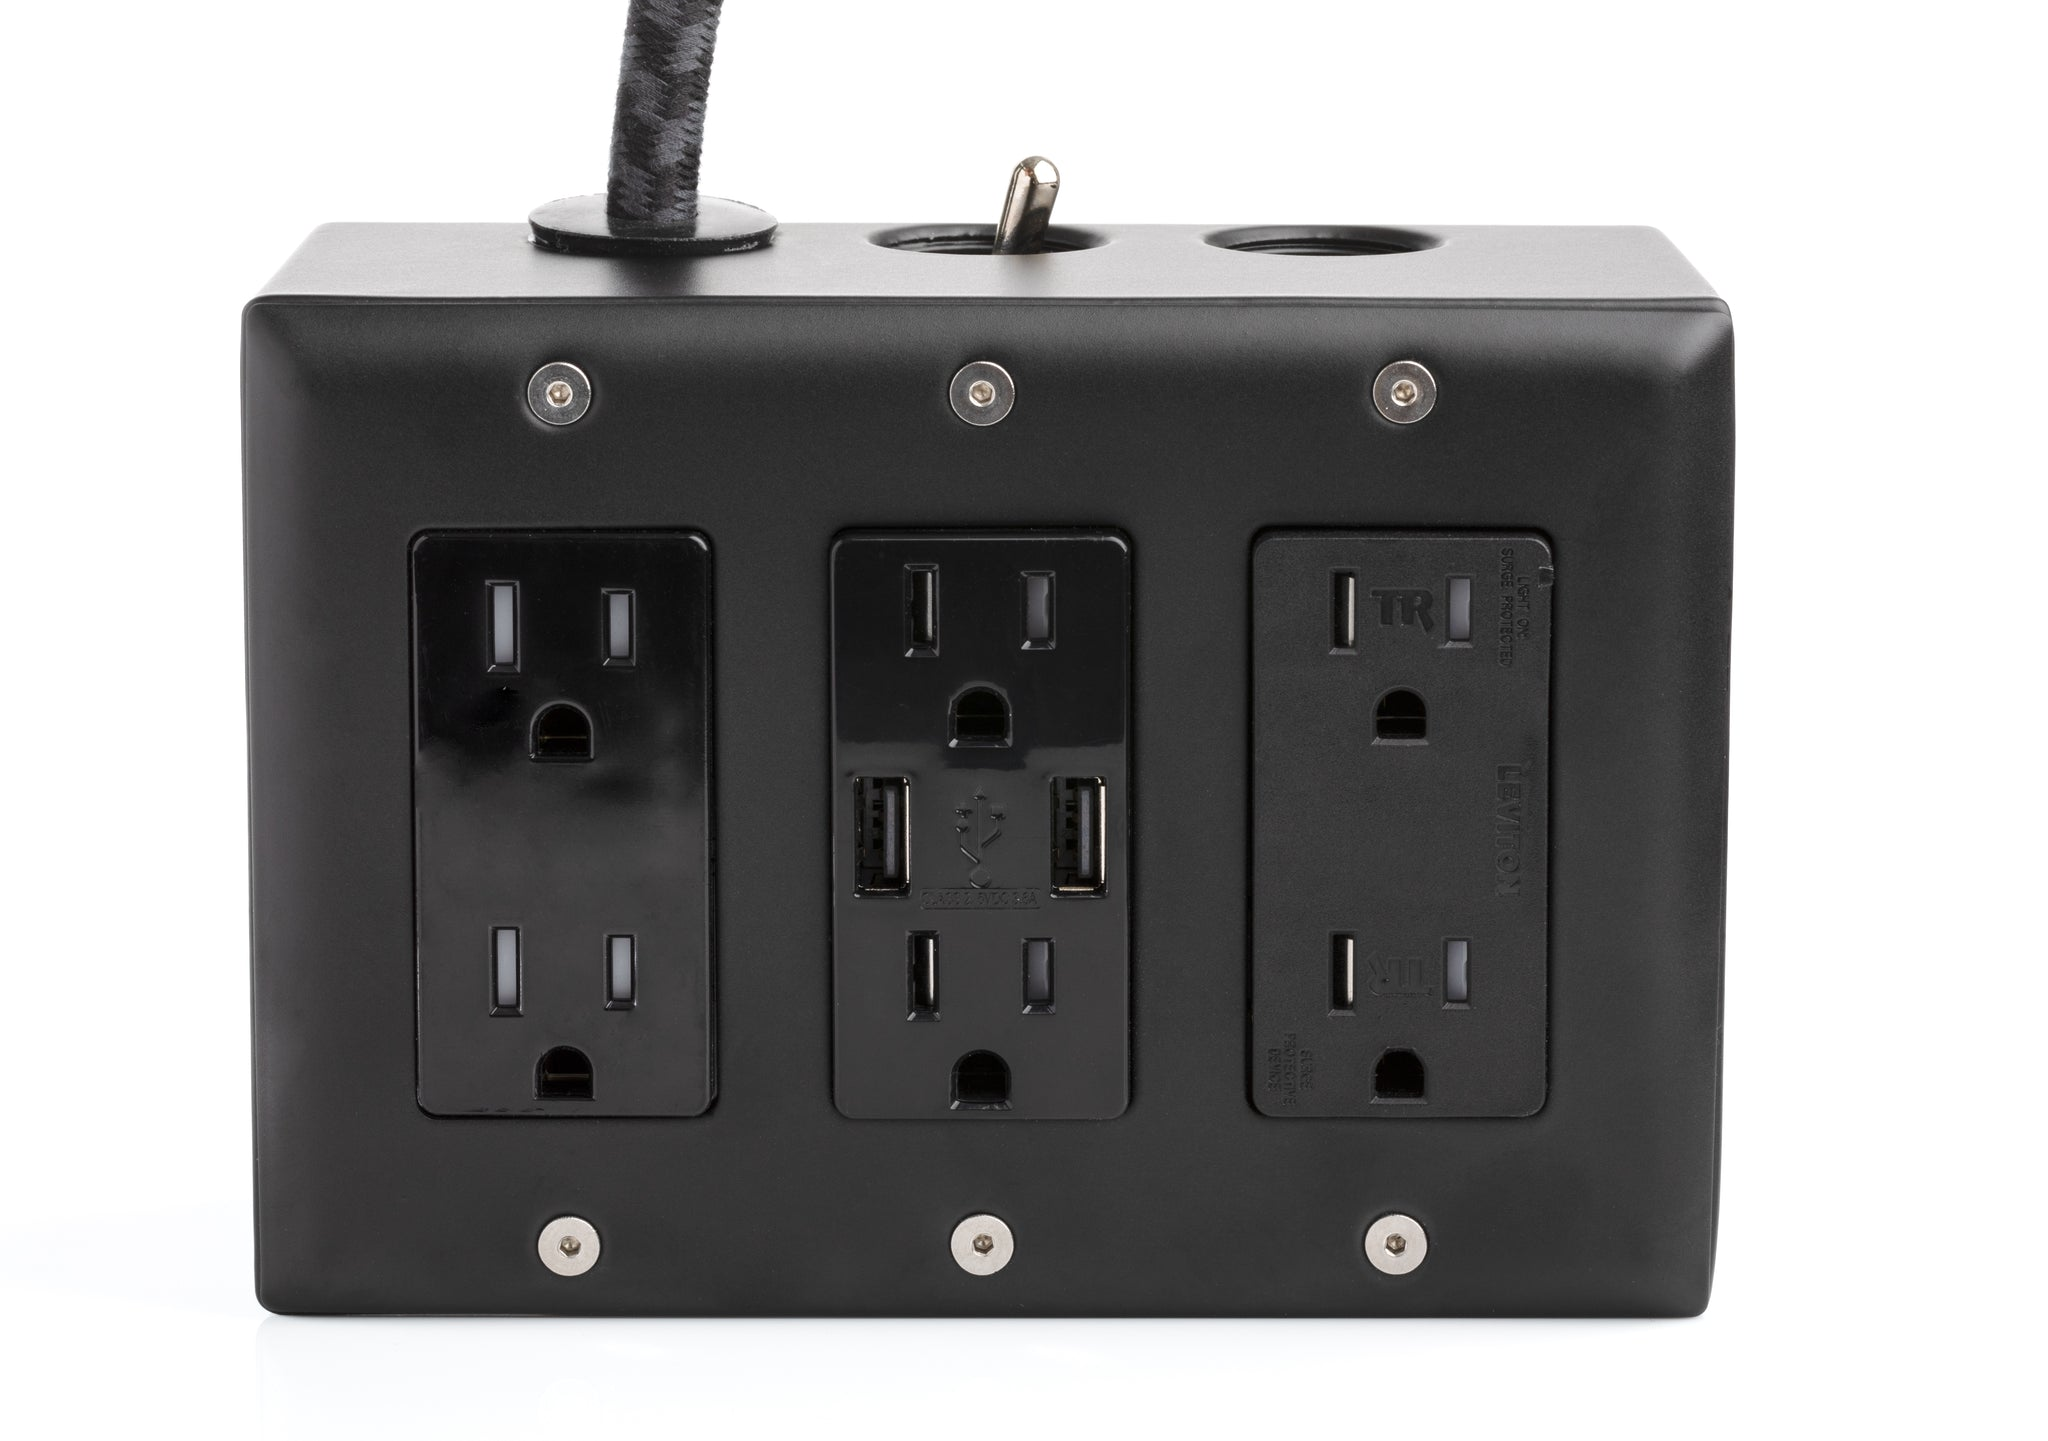 New! 6' Extō Surge 720 Smart Chip Surge-Protected Smart USB 6-Outlet Power Strip Carrara (Matte) Black